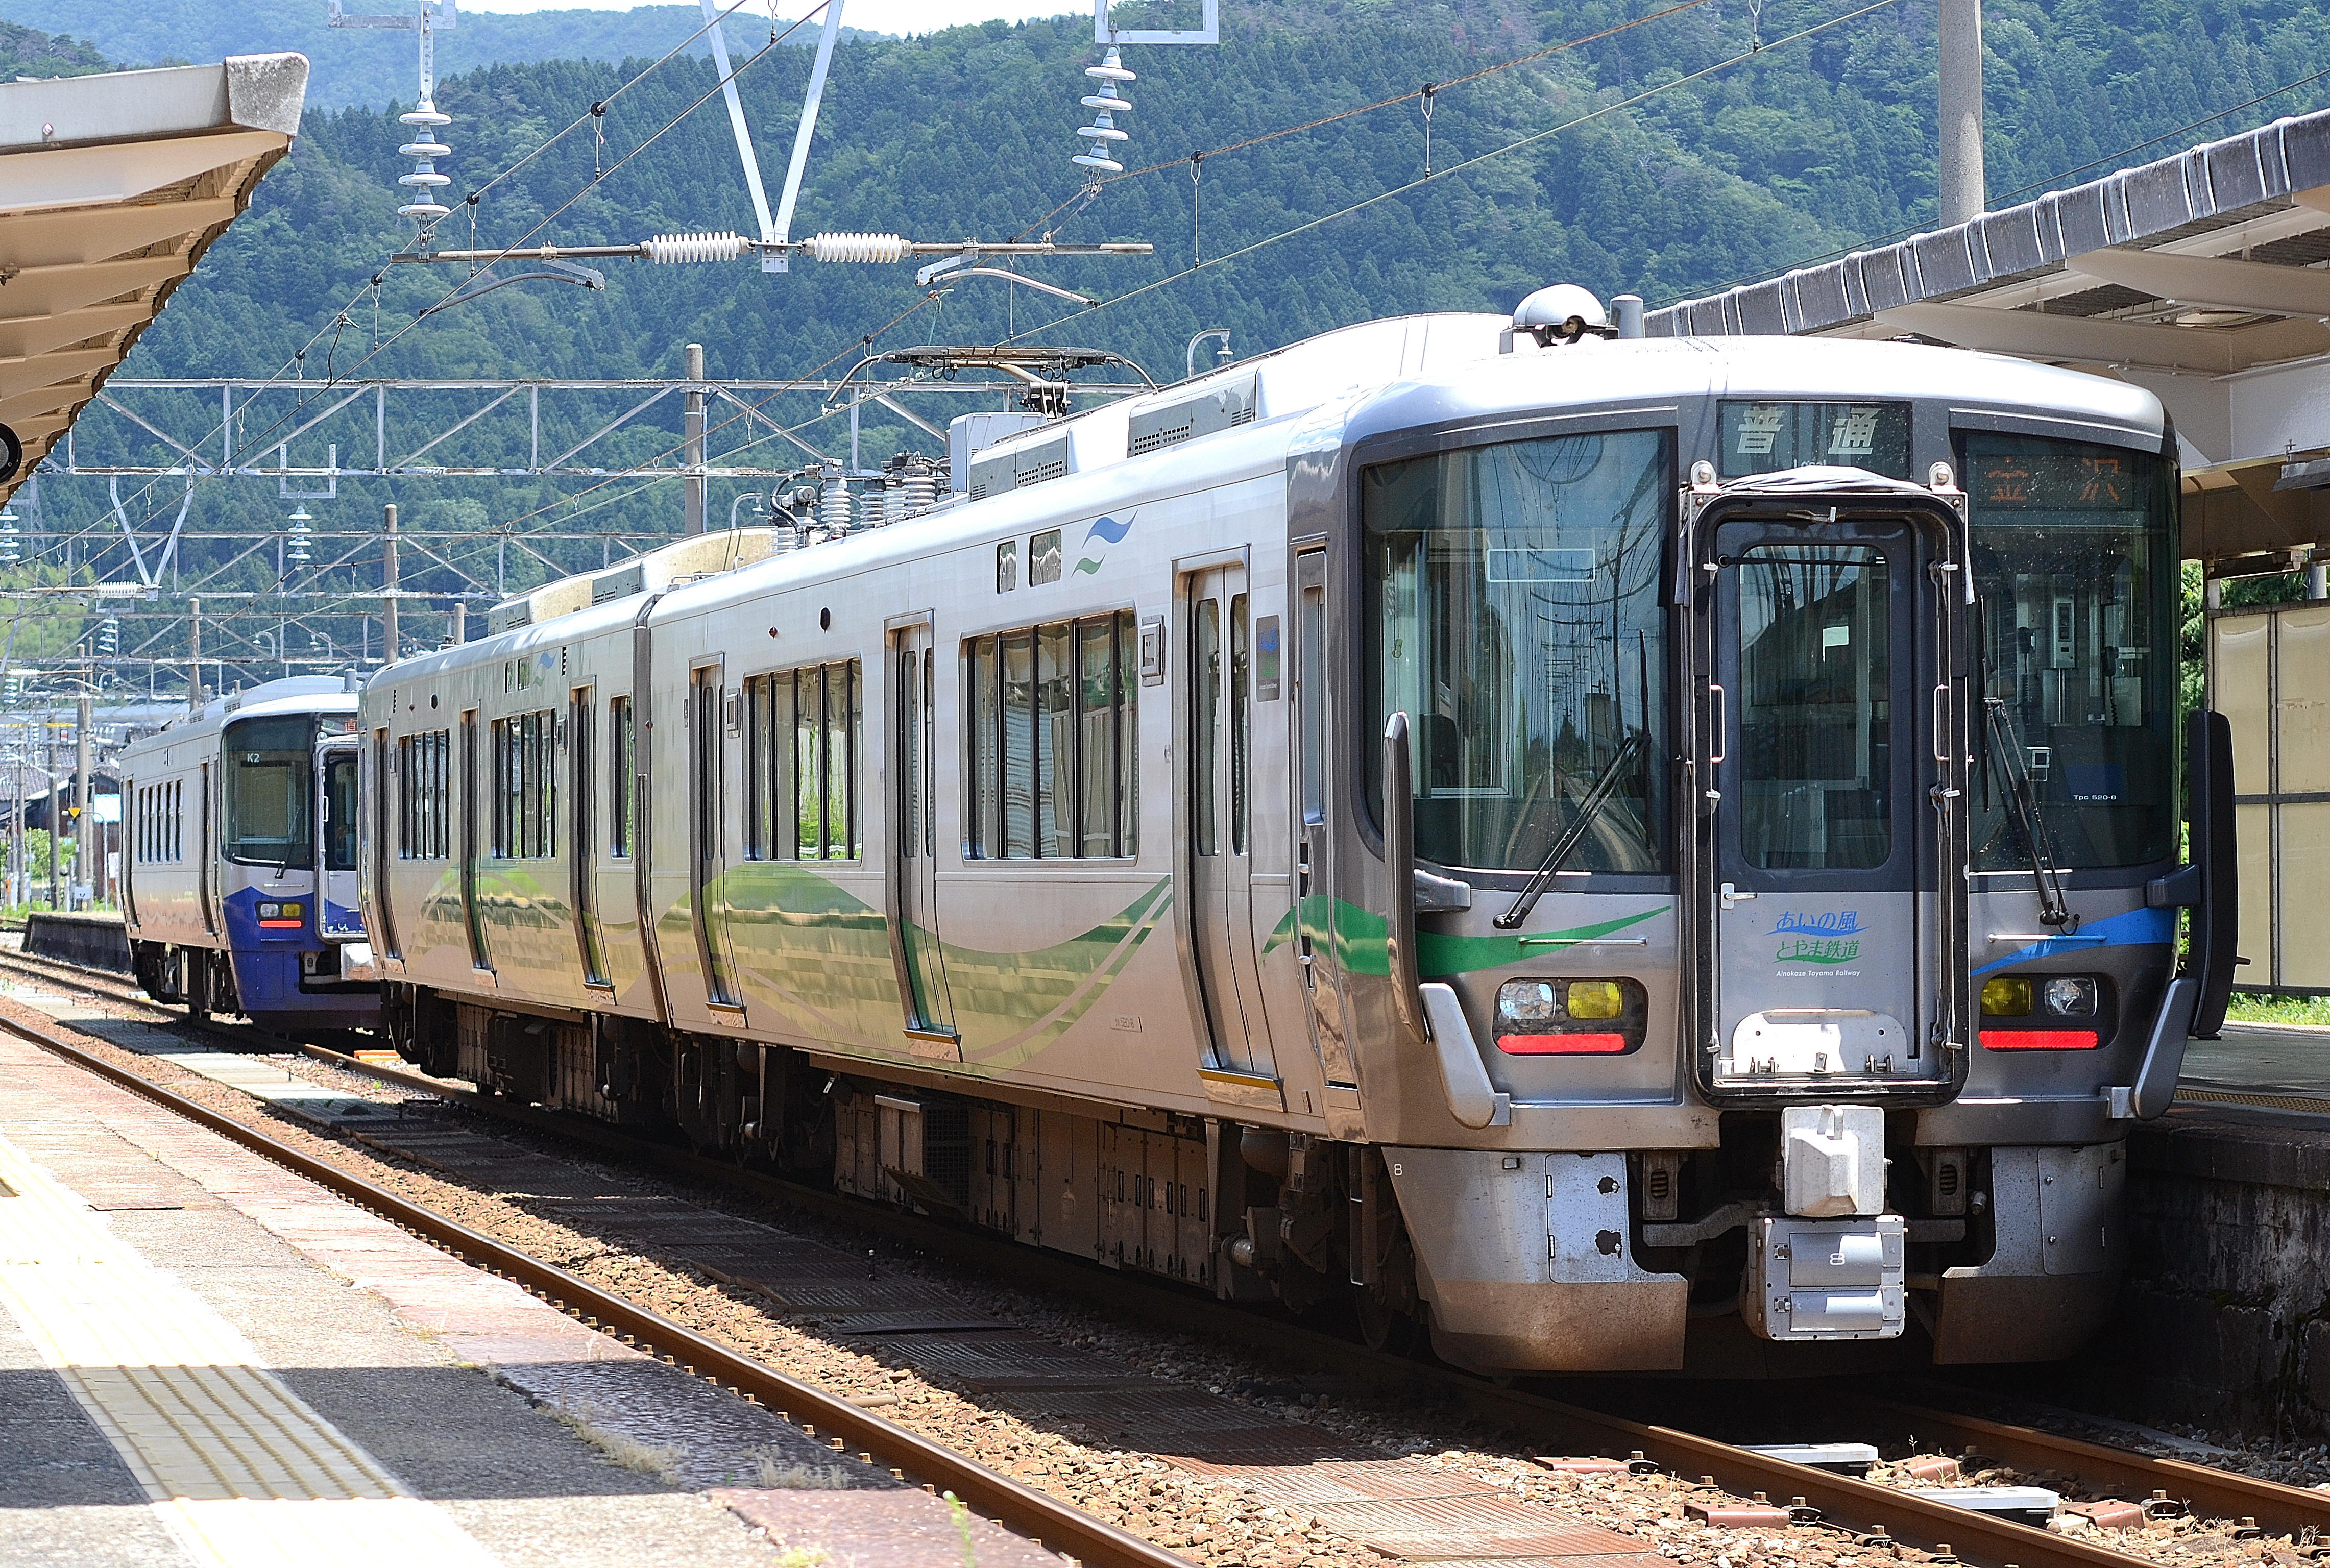 https://upload.wikimedia.org/wikipedia/commons/b/bd/ET122kei_and_521kei_tomari_station.JPG